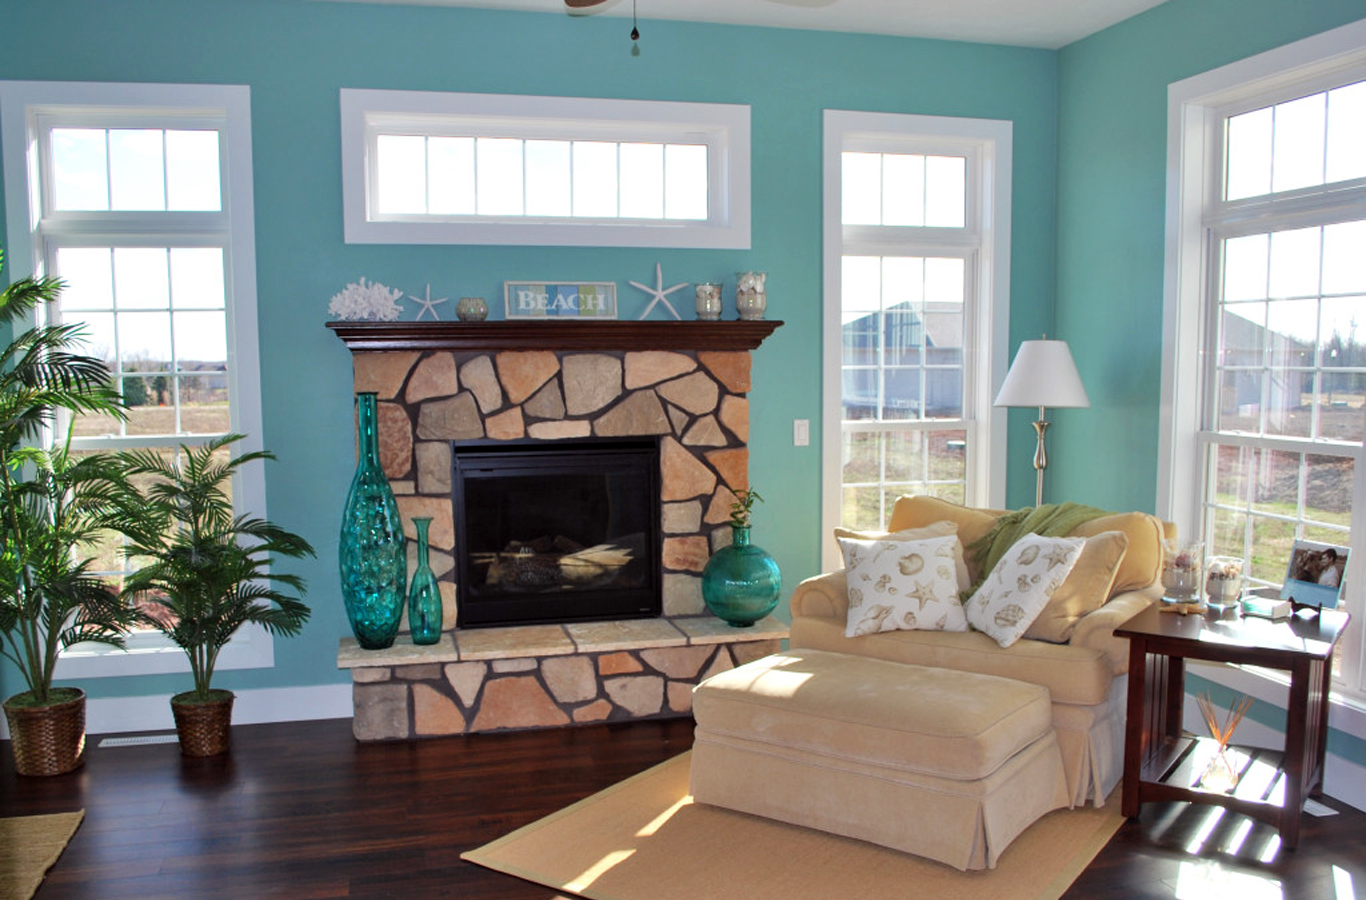 Southwest Home Dcor to Make House More Beautiful with Ethnic Style